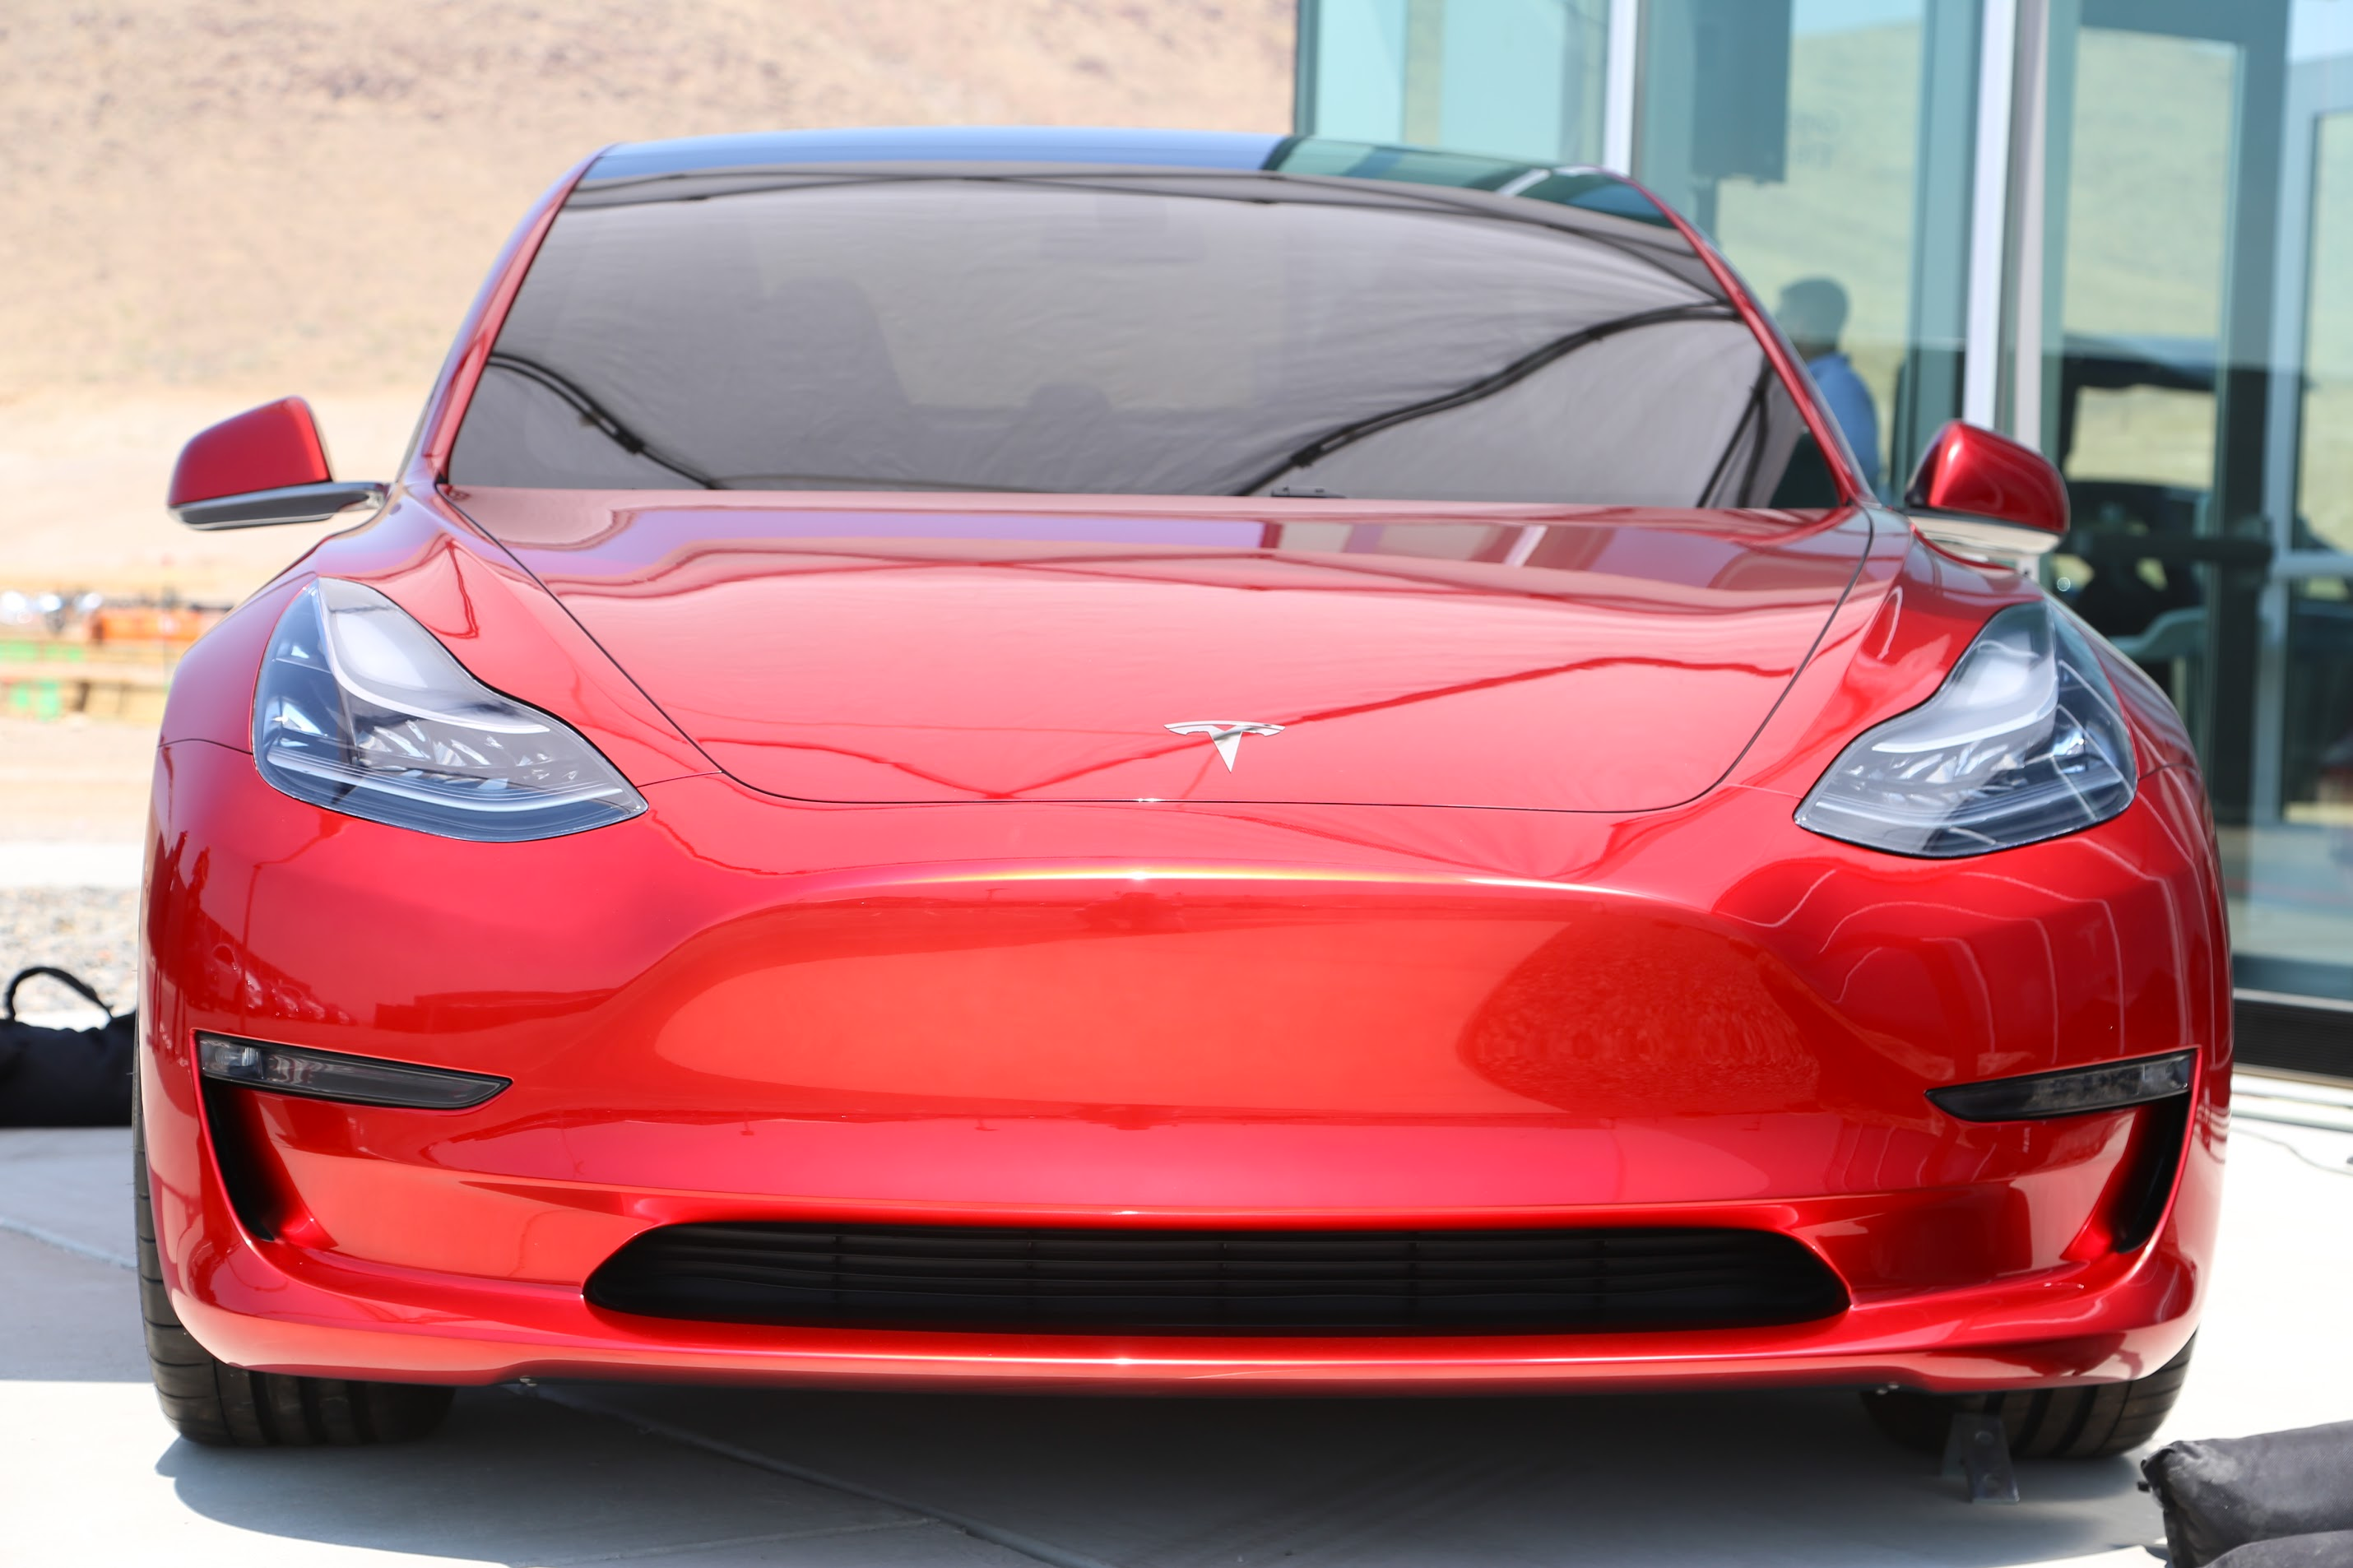 Tesla Model 3 Rare Red Prototype Displayed At The Gigafactory Gallery Car And Driver